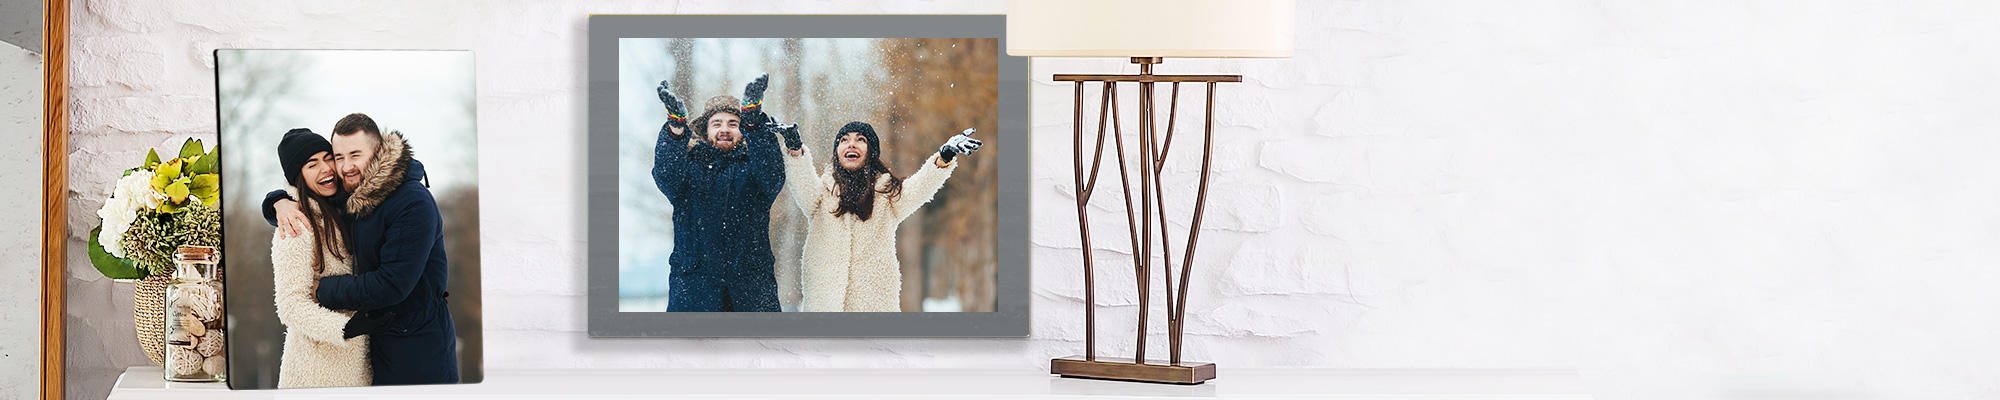 Canvas & Décor : Brighten up your home with fabulous personalised décor from £7.99